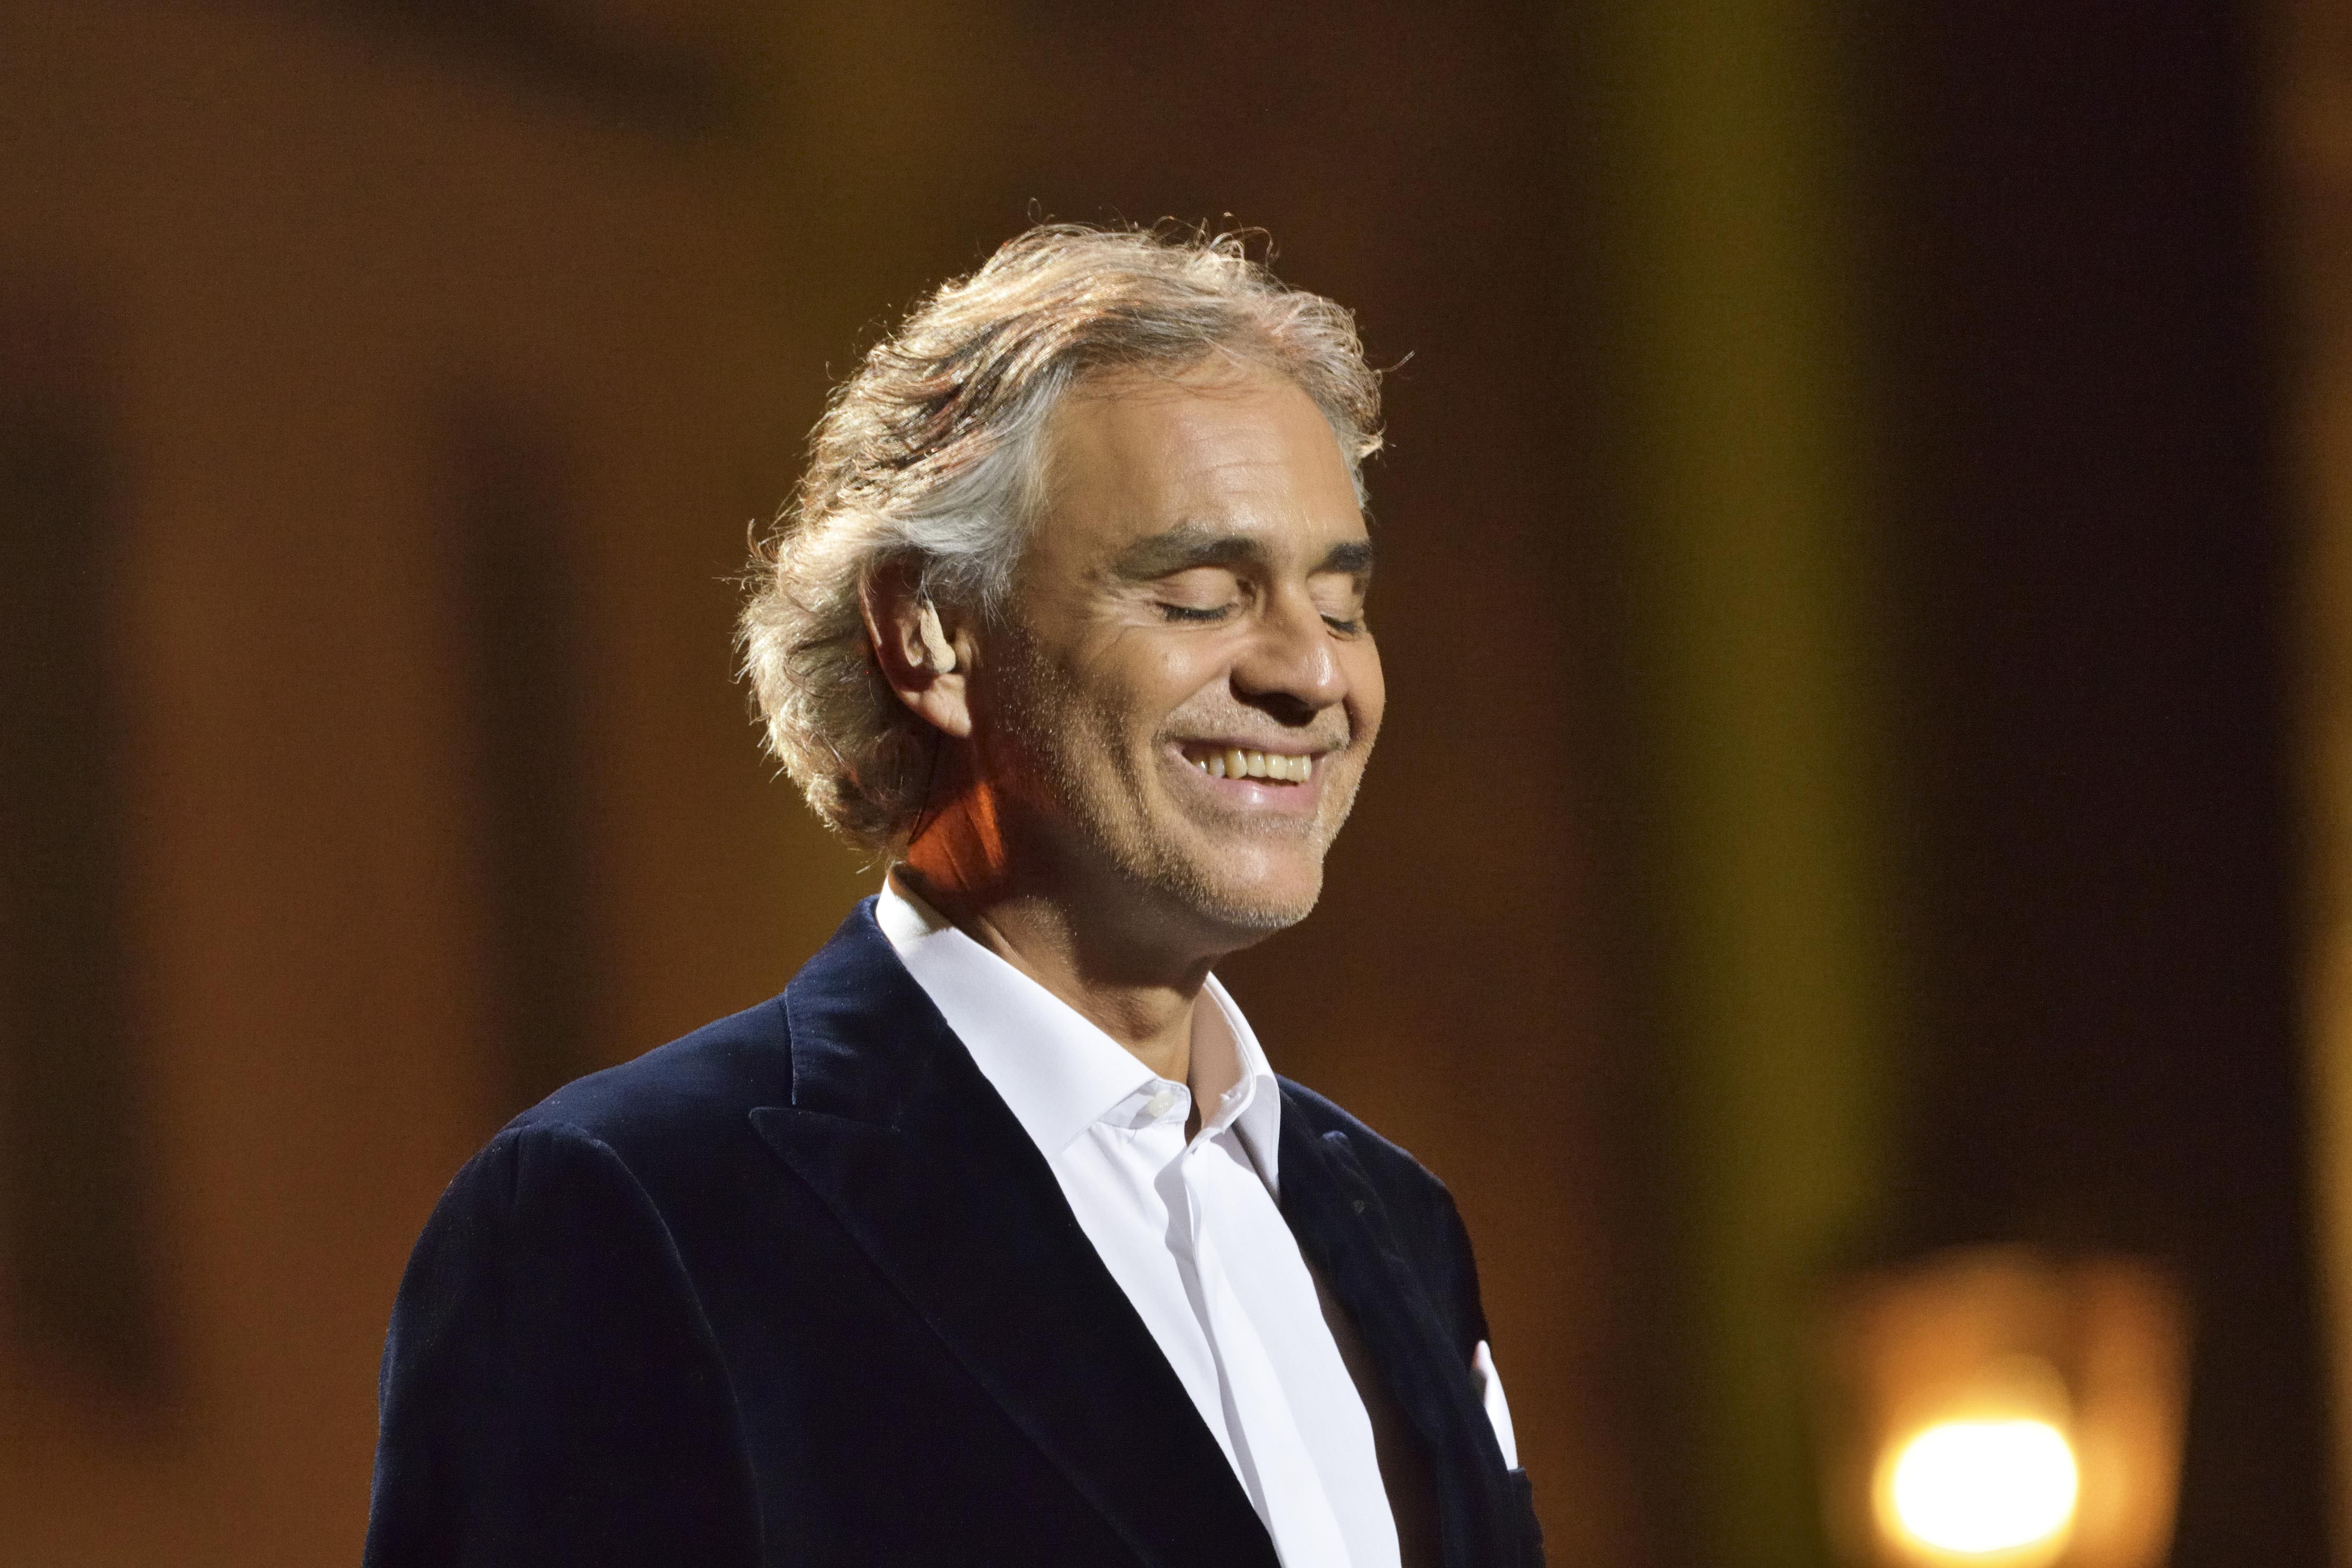 andrea bocelli besame muchoandrea bocelli mp3, andrea bocelli time to say goodbye, andrea bocelli слушать, andrea bocelli киев, andrea bocelli con te partirò, andrea bocelli melodramma, andrea bocelli биография, andrea bocelli caruso, andrea bocelli youtube, andrea bocelli 2017, andrea bocelli besame mucho, andrea bocelli songs, andrea bocelli vivo per lei, andrea bocelli quizas, andrea bocelli portofino, andrea bocelli концерт, andrea bocelli sarah brightman mp3, andrea bocelli скачать альбом, andrea bocelli time to say goodbye lyrics, andrea bocelli cinema